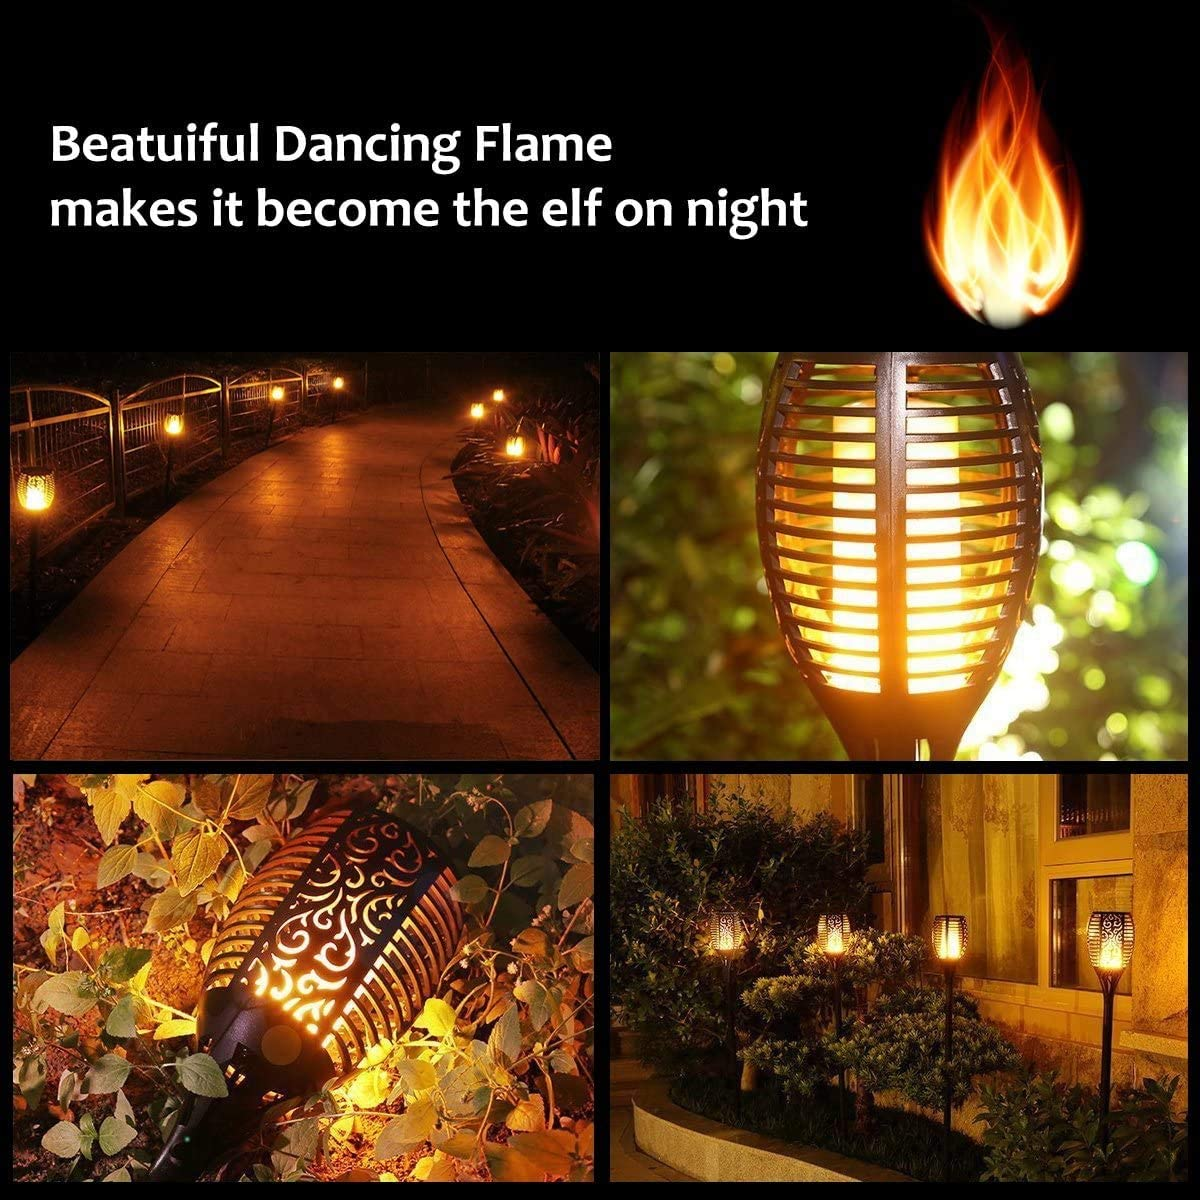 4 Pack Lebote Tec Solar Torch Lights,Solar Flame Lights Outdoor Flickering Flames Torches Lights Waterproof 96 LED Dancing Flames Landscape Decoration Lighting Solar Spotlights for Garden Yard Patio